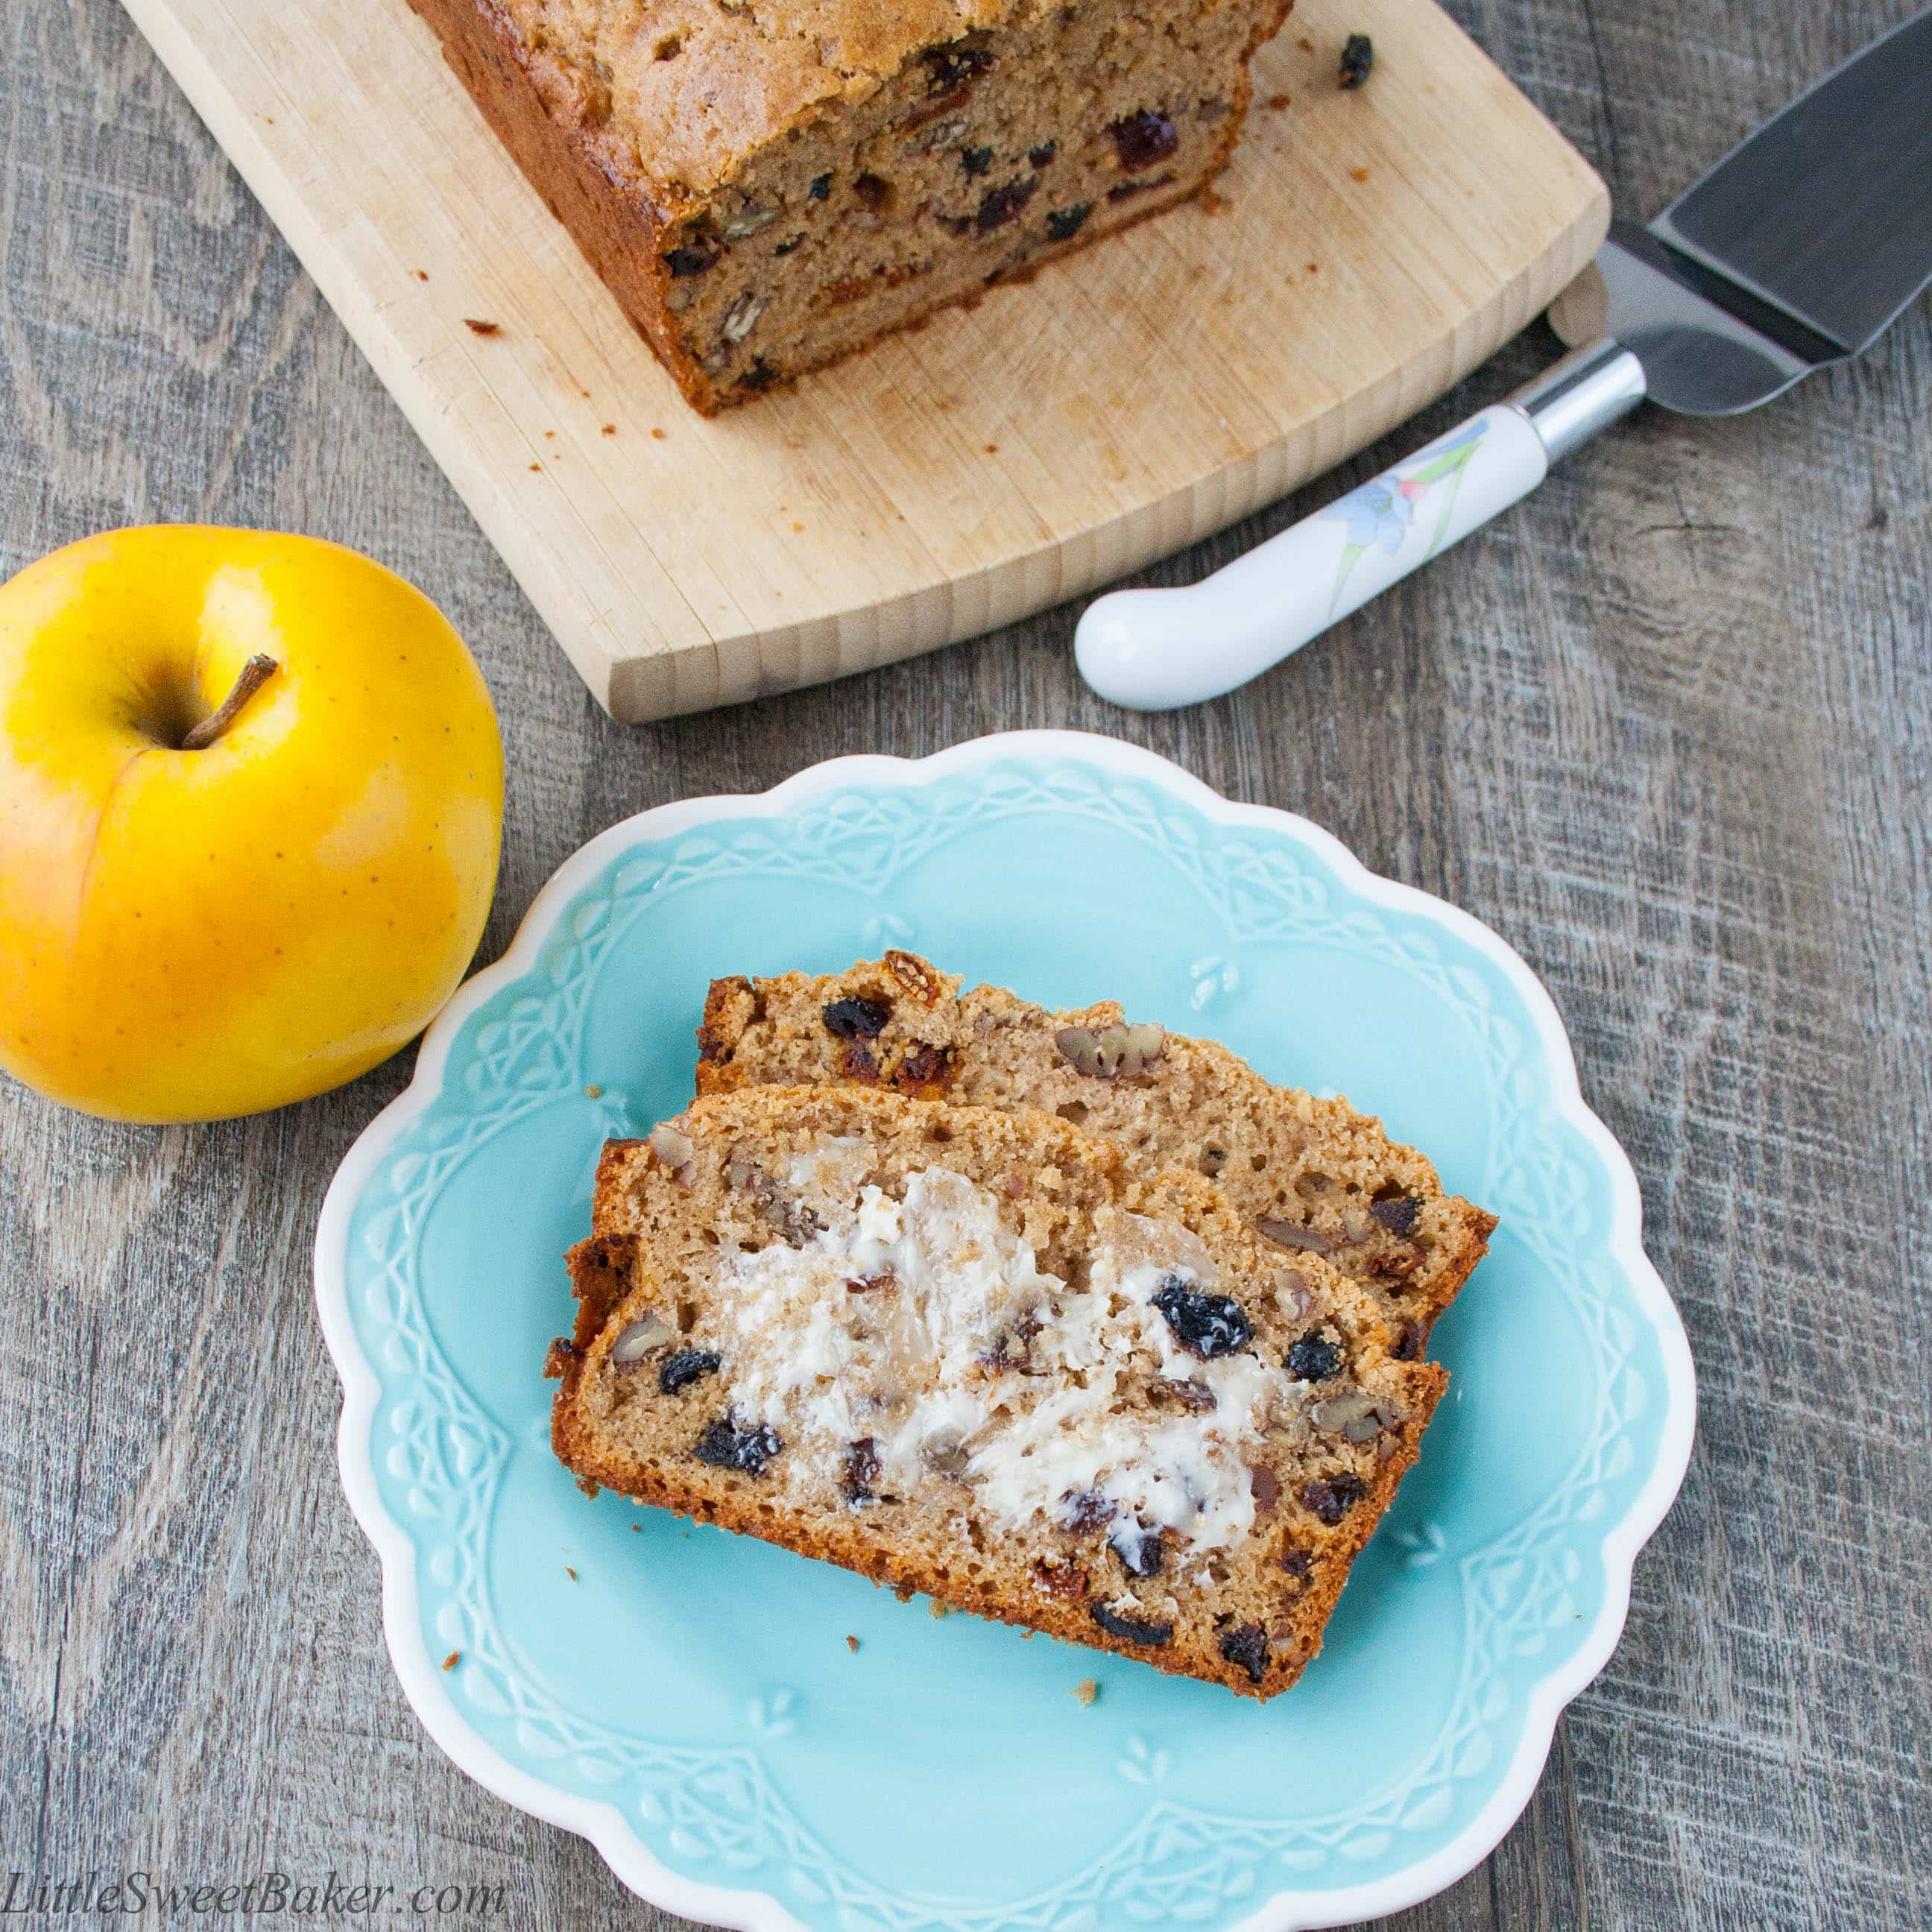 FRUIT & CINNAMON APPLESAUCE BREAD. A delicious, soft and moist cinnamon applesauce bread loaded with yummy fruits and nuts.